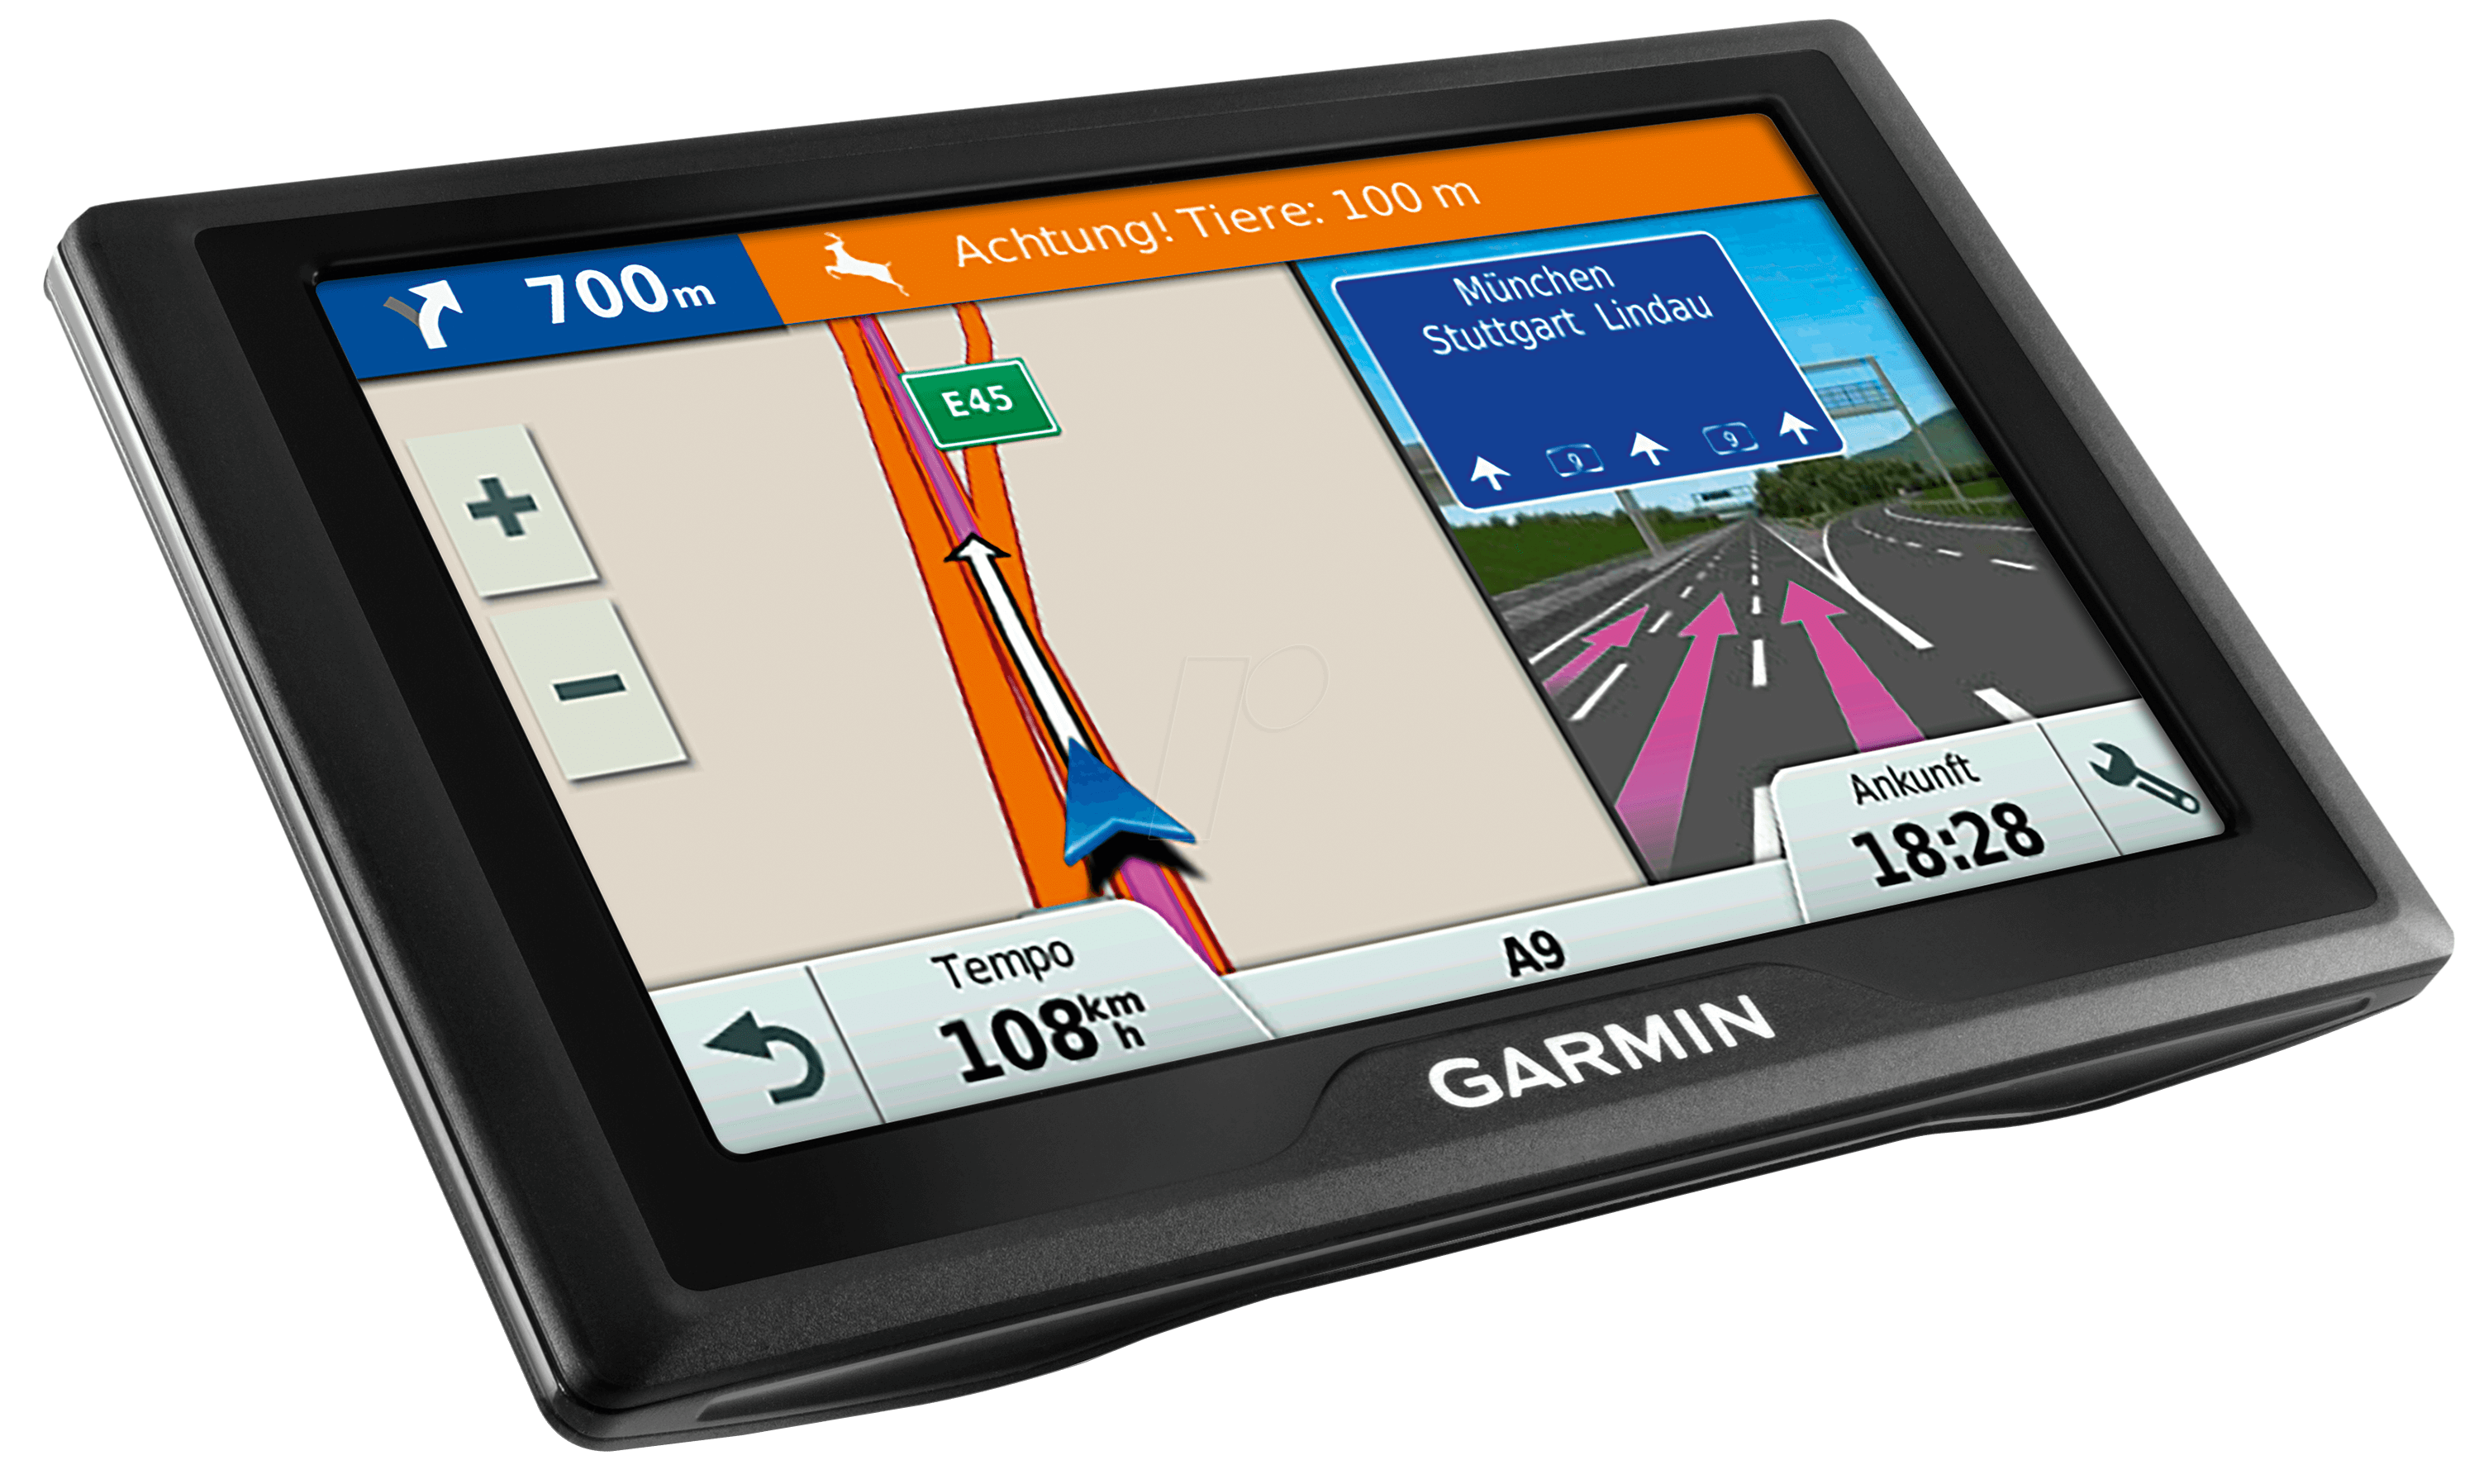 garmin d40ce syst me de navigation de 10 90 cm chez reichelt elektronik. Black Bedroom Furniture Sets. Home Design Ideas